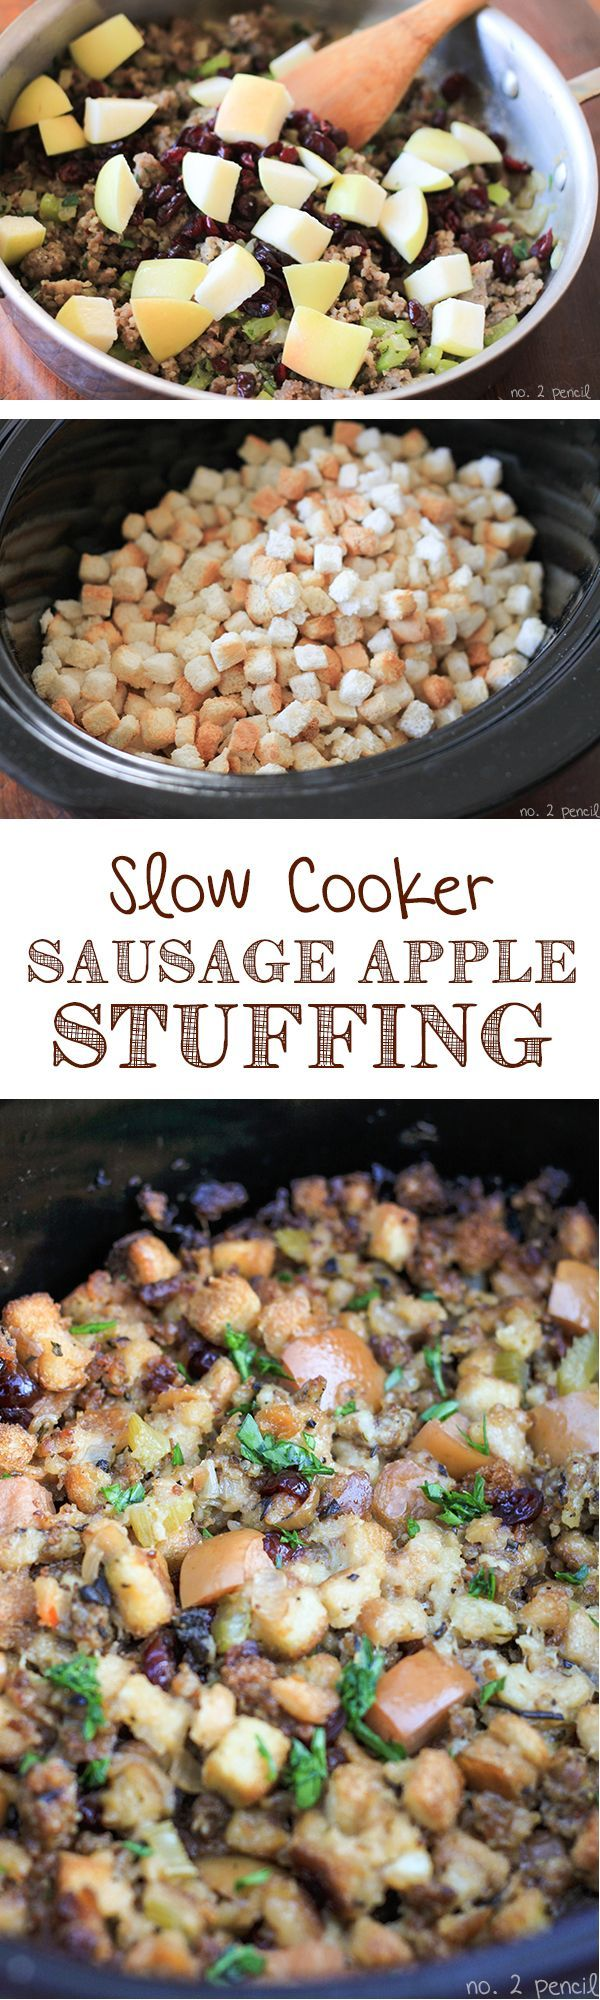 SLOW COOKER SAUSAGE APPLE STUFFING | Slow Cooker Stuffing, packed with sausage, apples and cranberries. #SlowCookerThanksgiving